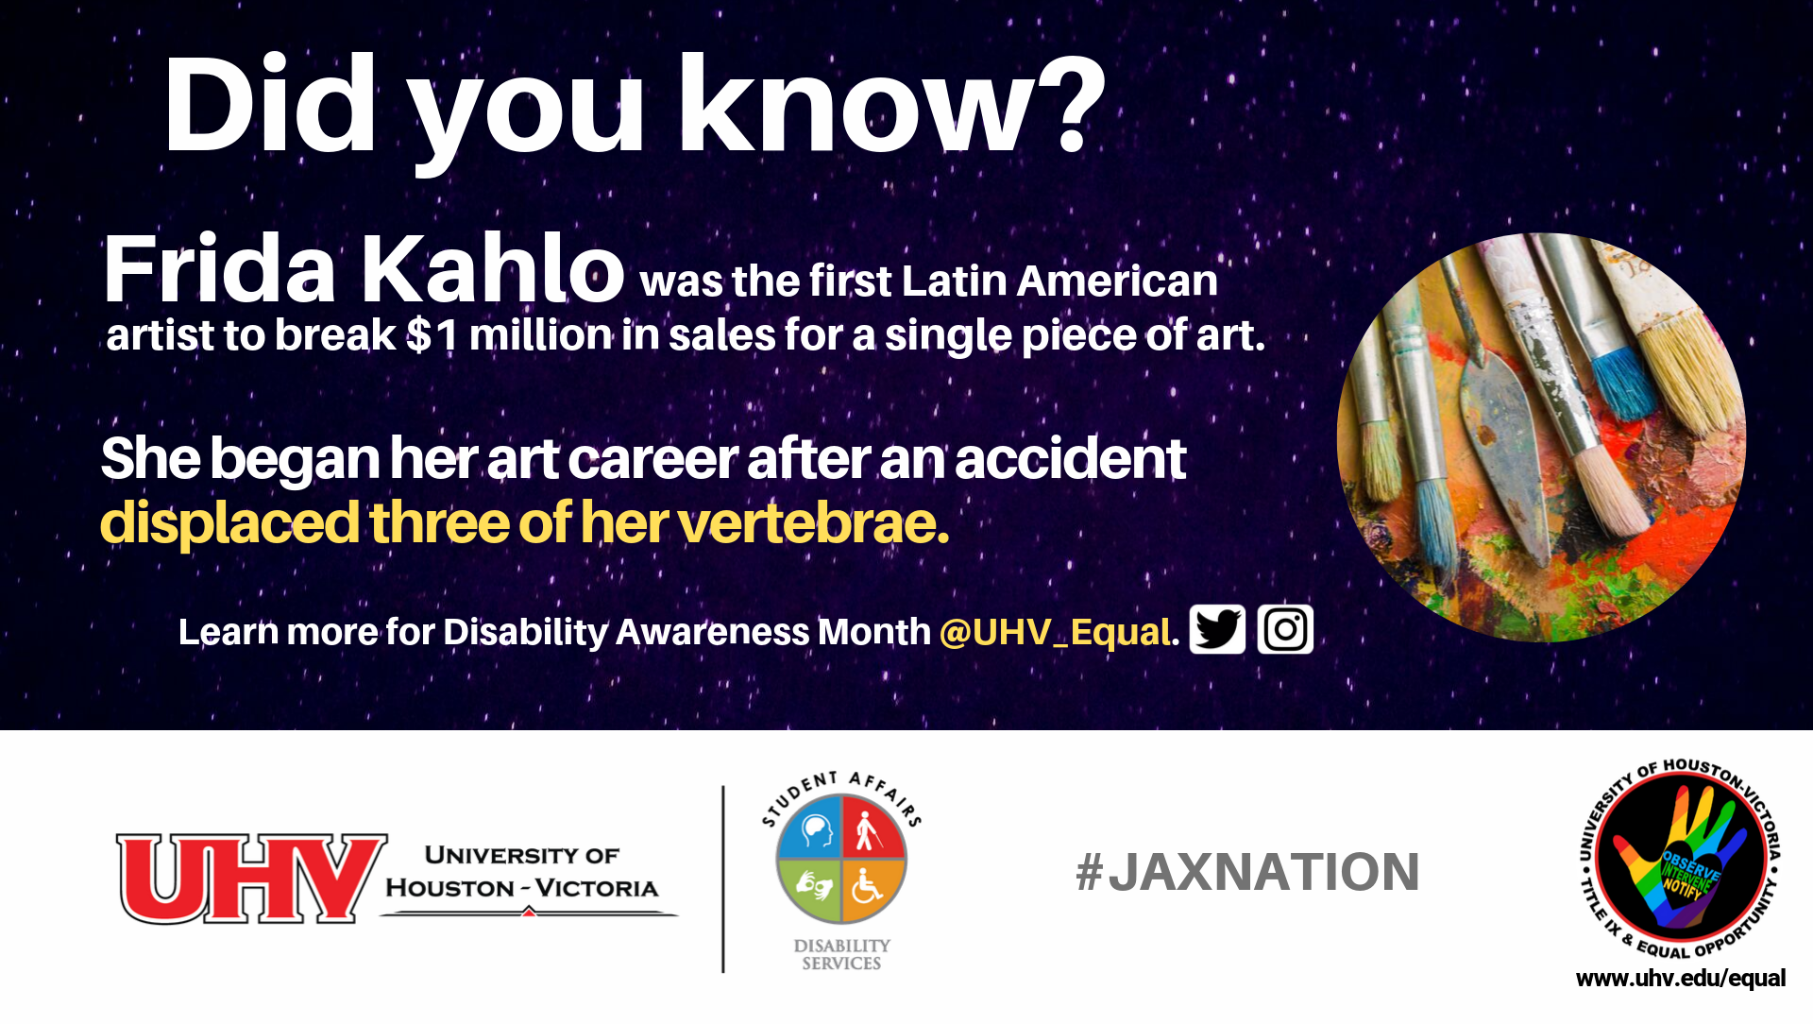 Did you know? Frida Kahlo was the first Latin American artist to break $1 million in sales for a single piece of art. She began her art career after an accident displaced three of her vertebrae. Art brush image. UHV Disability Services Logo. Learn more for Disability Awareness Month @UHV_Equal.#jaxnation. University of Houston-Victoria Title IX and Equal Opportunity Logo (rainbow hand with heart i